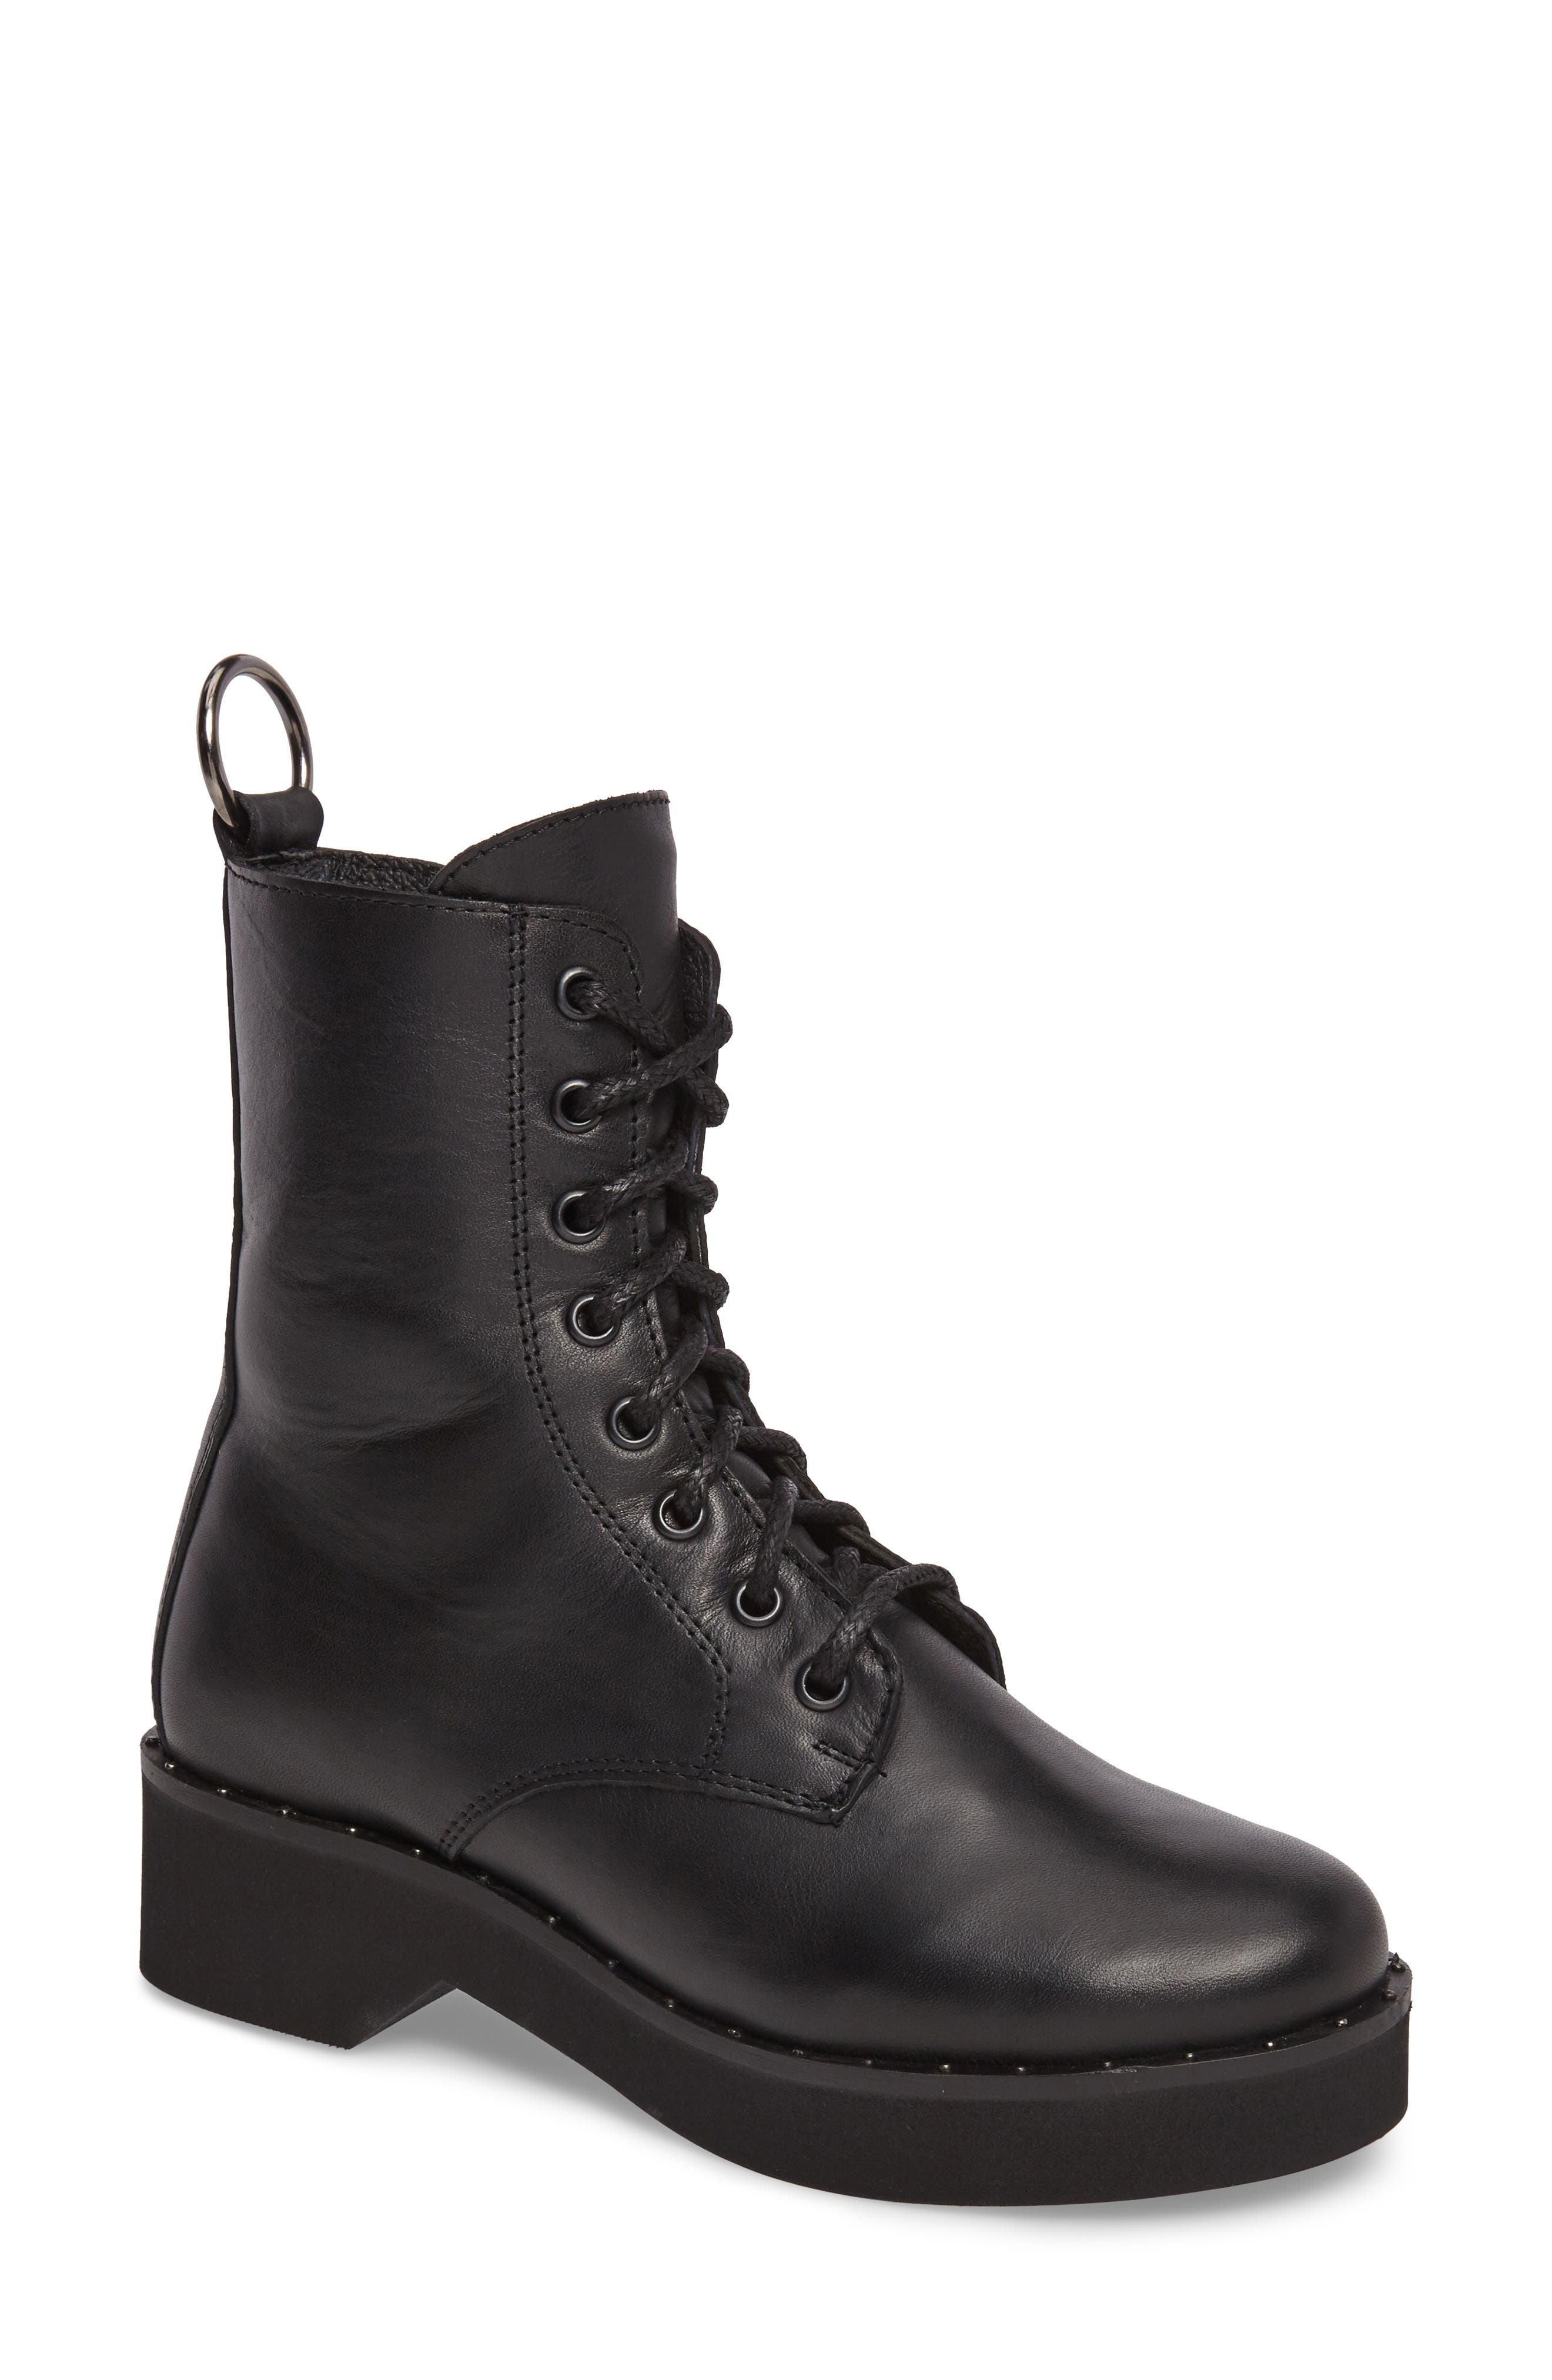 Rocco Combat Boot,                             Main thumbnail 1, color,                             Black Leather